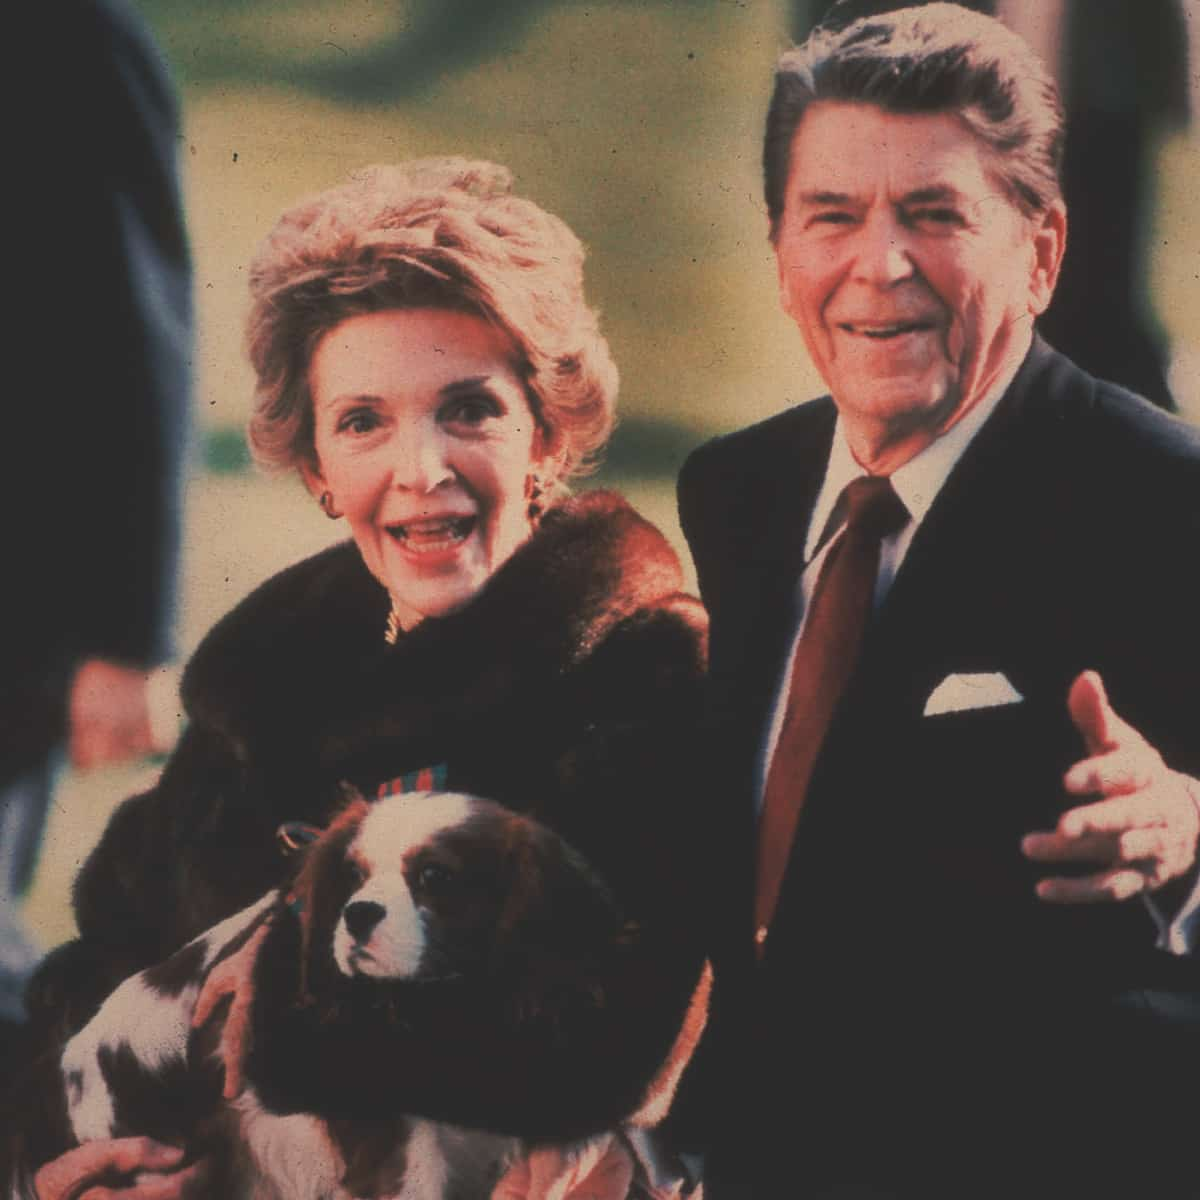 FILE – This December 1986, file photo shows first lady Nancy Reagan holding the Reagans' pet Rex, a King Charles spaniel, as she and President Reagan walk on the White House South lawn. (AP Photo/Dennis Cook, File)